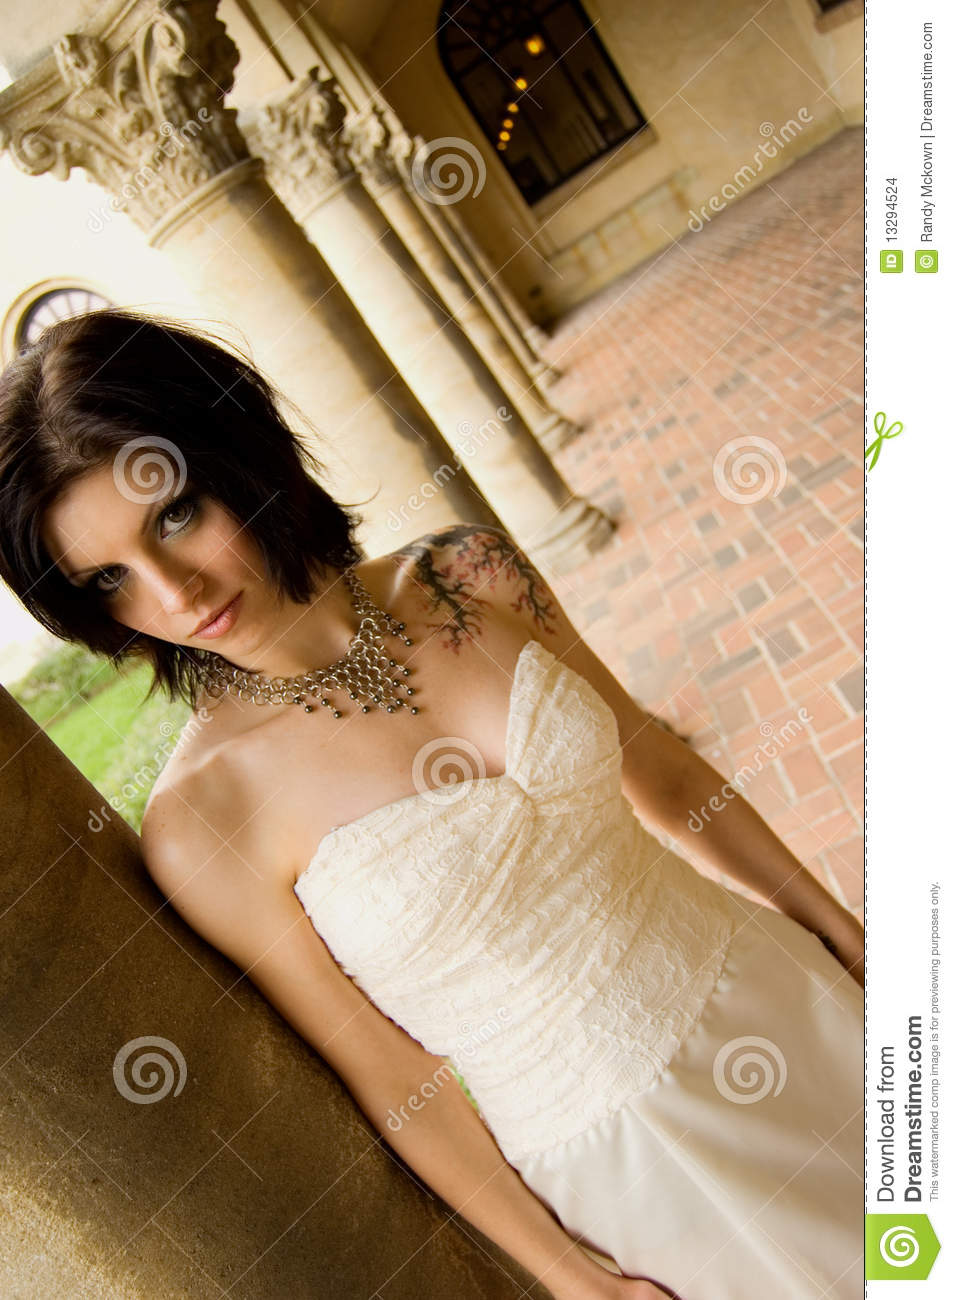 Tattoo Woman In Bridal Dress Stock Photo - Image of brunette, person ...